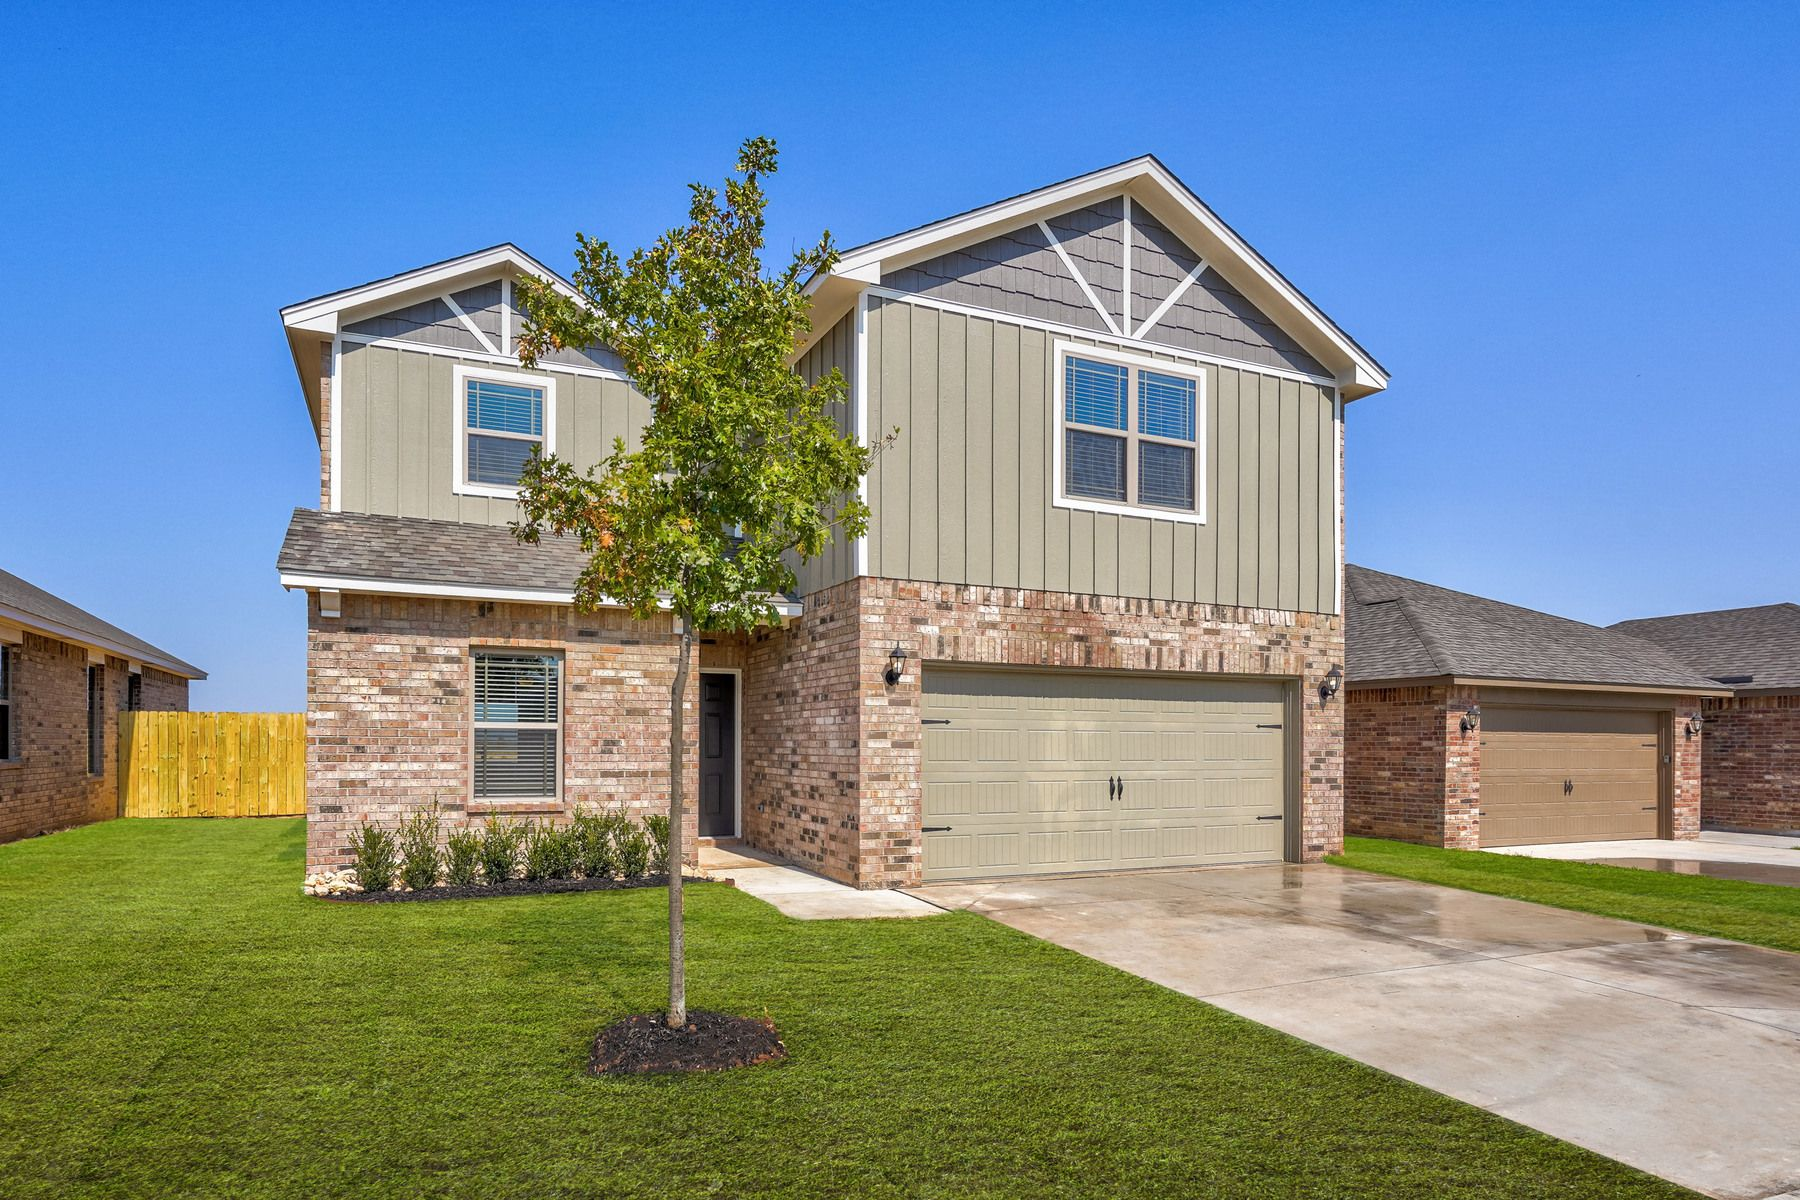 LGI Homes at Wyndemere:The two-story Driftwood is now available!